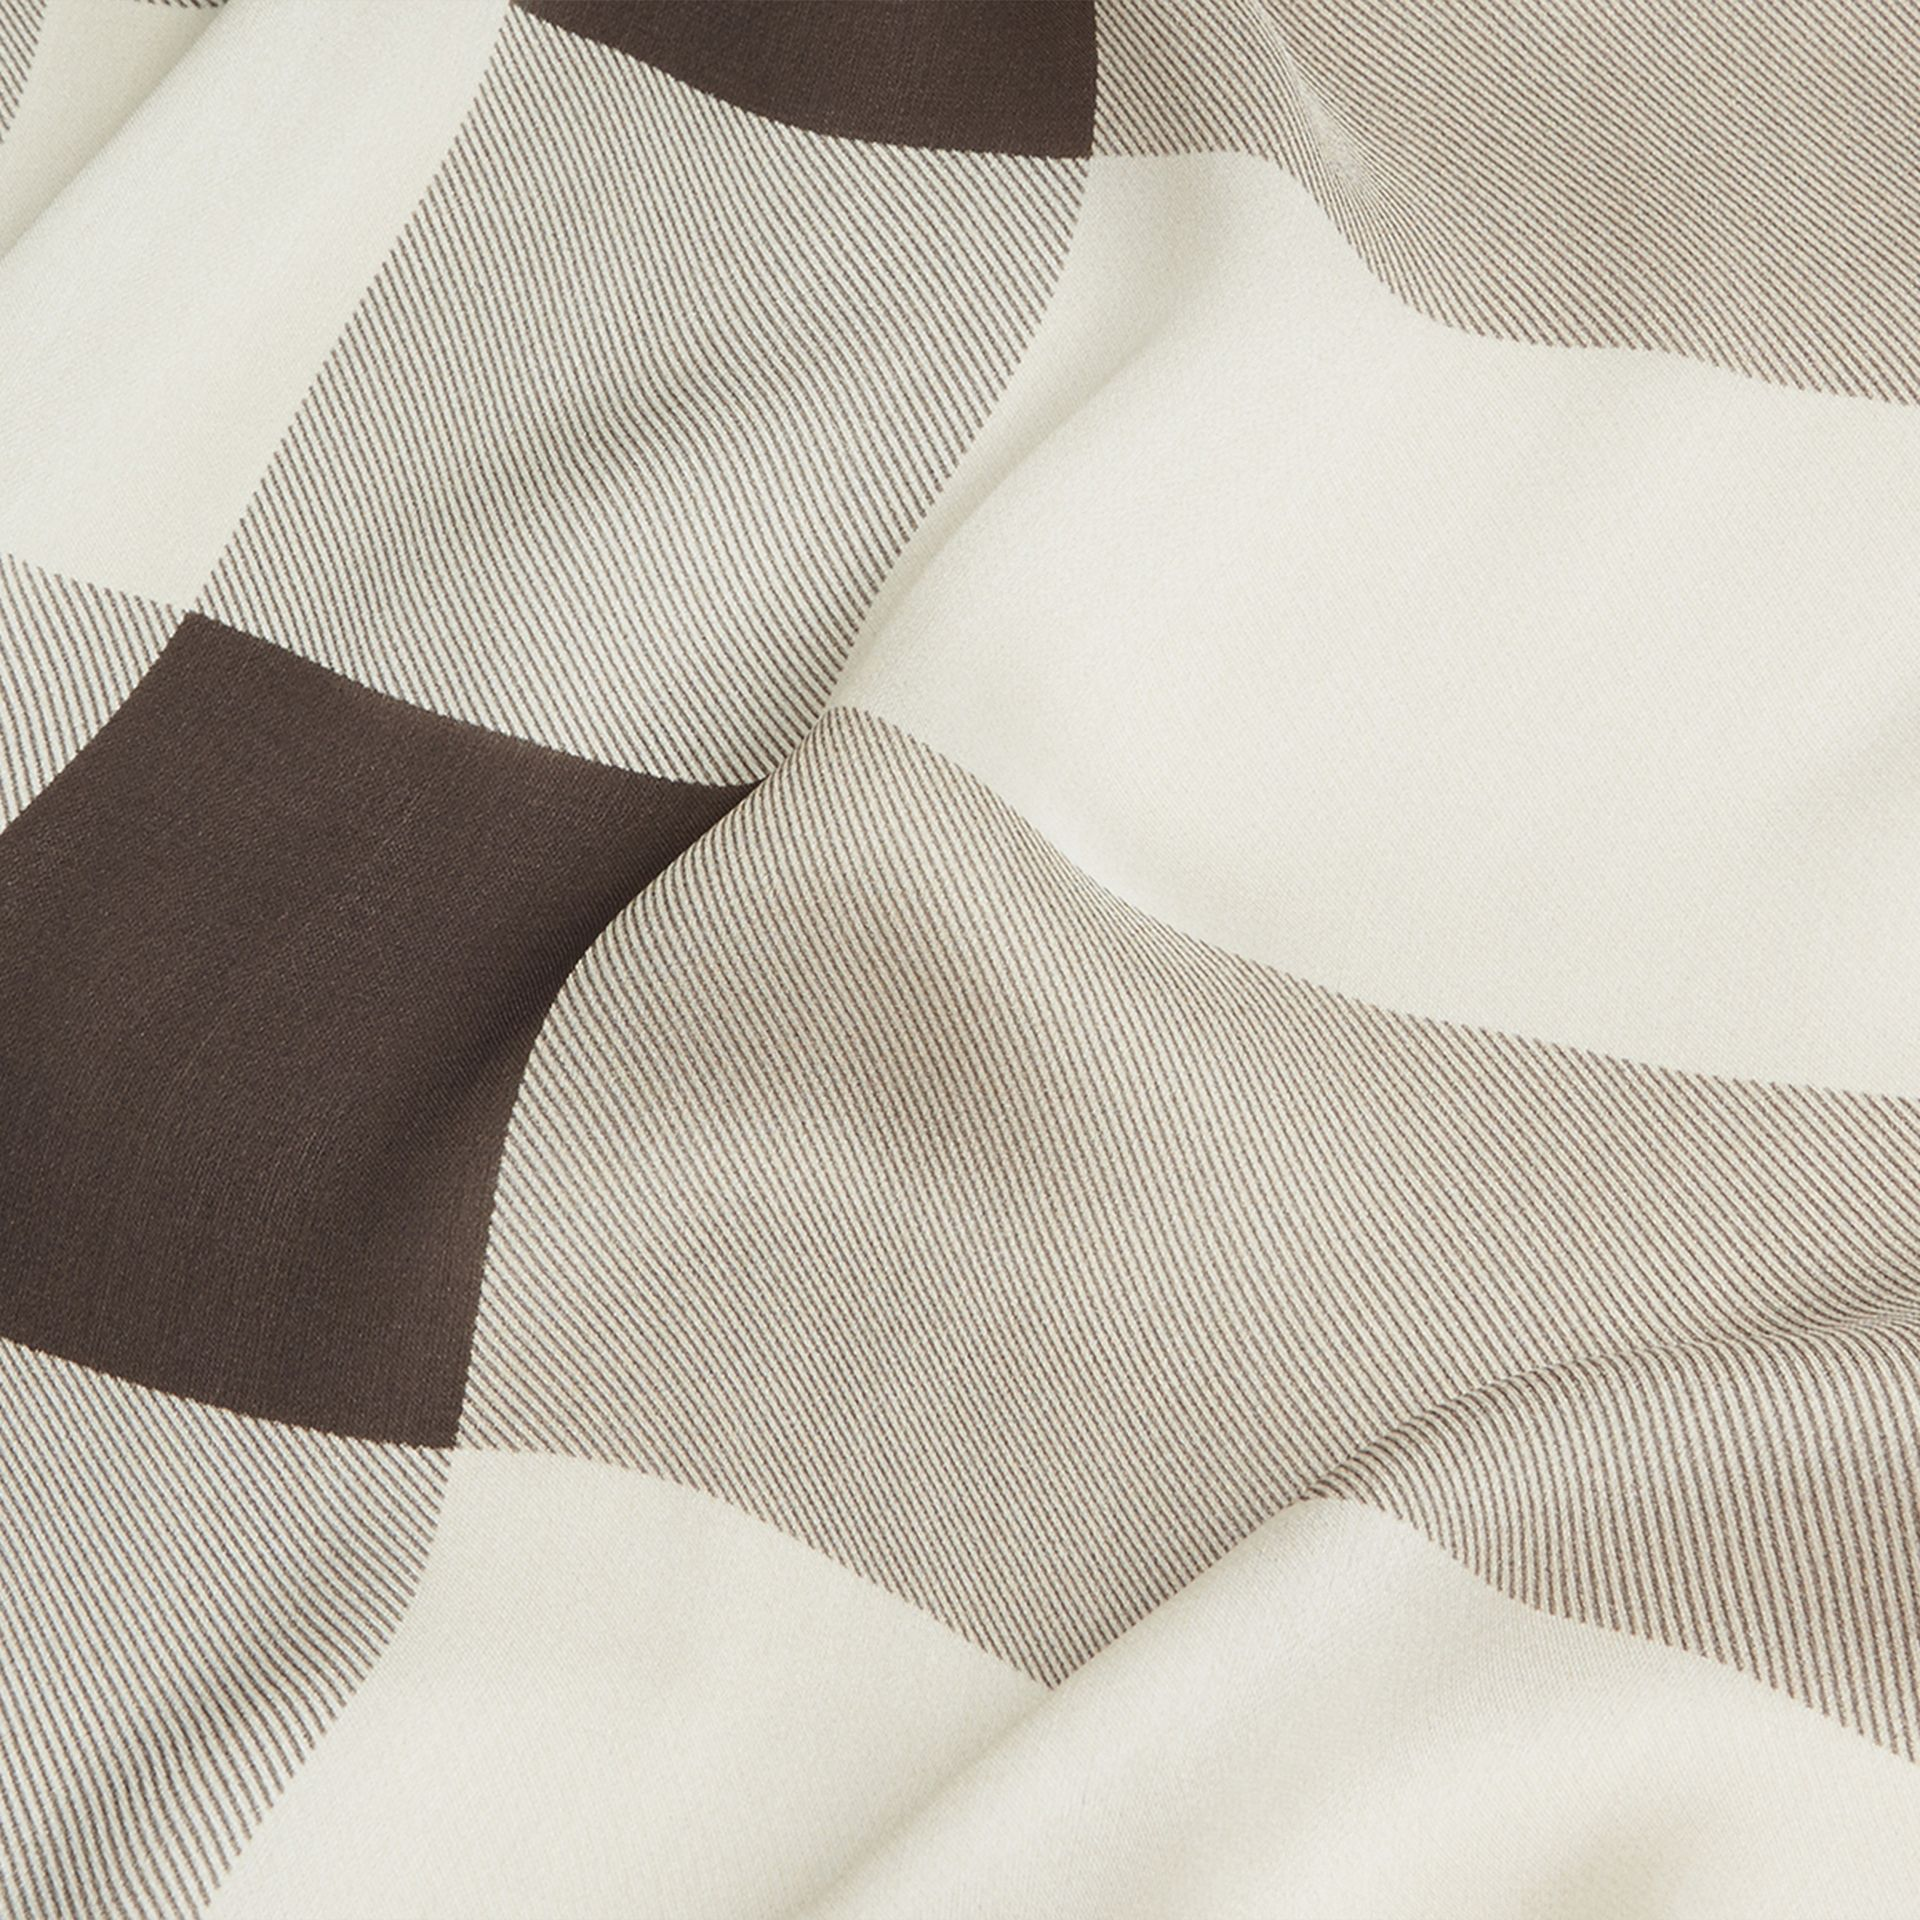 Lightweight Check Silk Scarf in Stone - Women | Burberry - gallery image 2